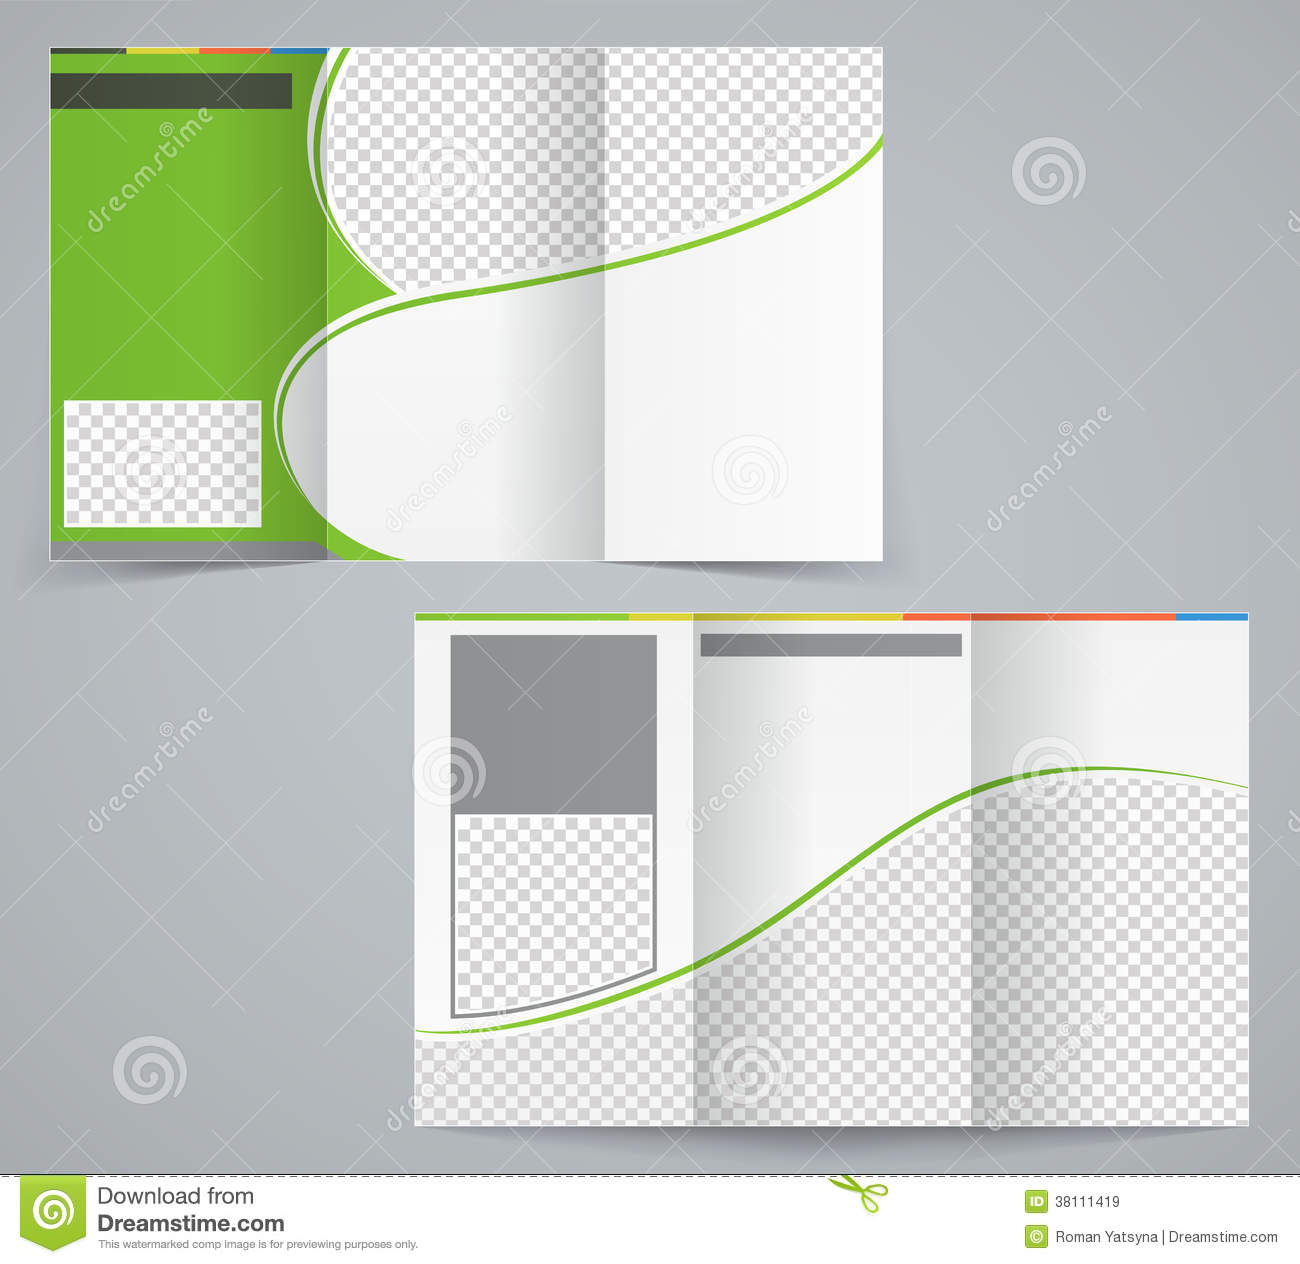 illustrator brochure templates - tri fold business brochure template vector green royalty